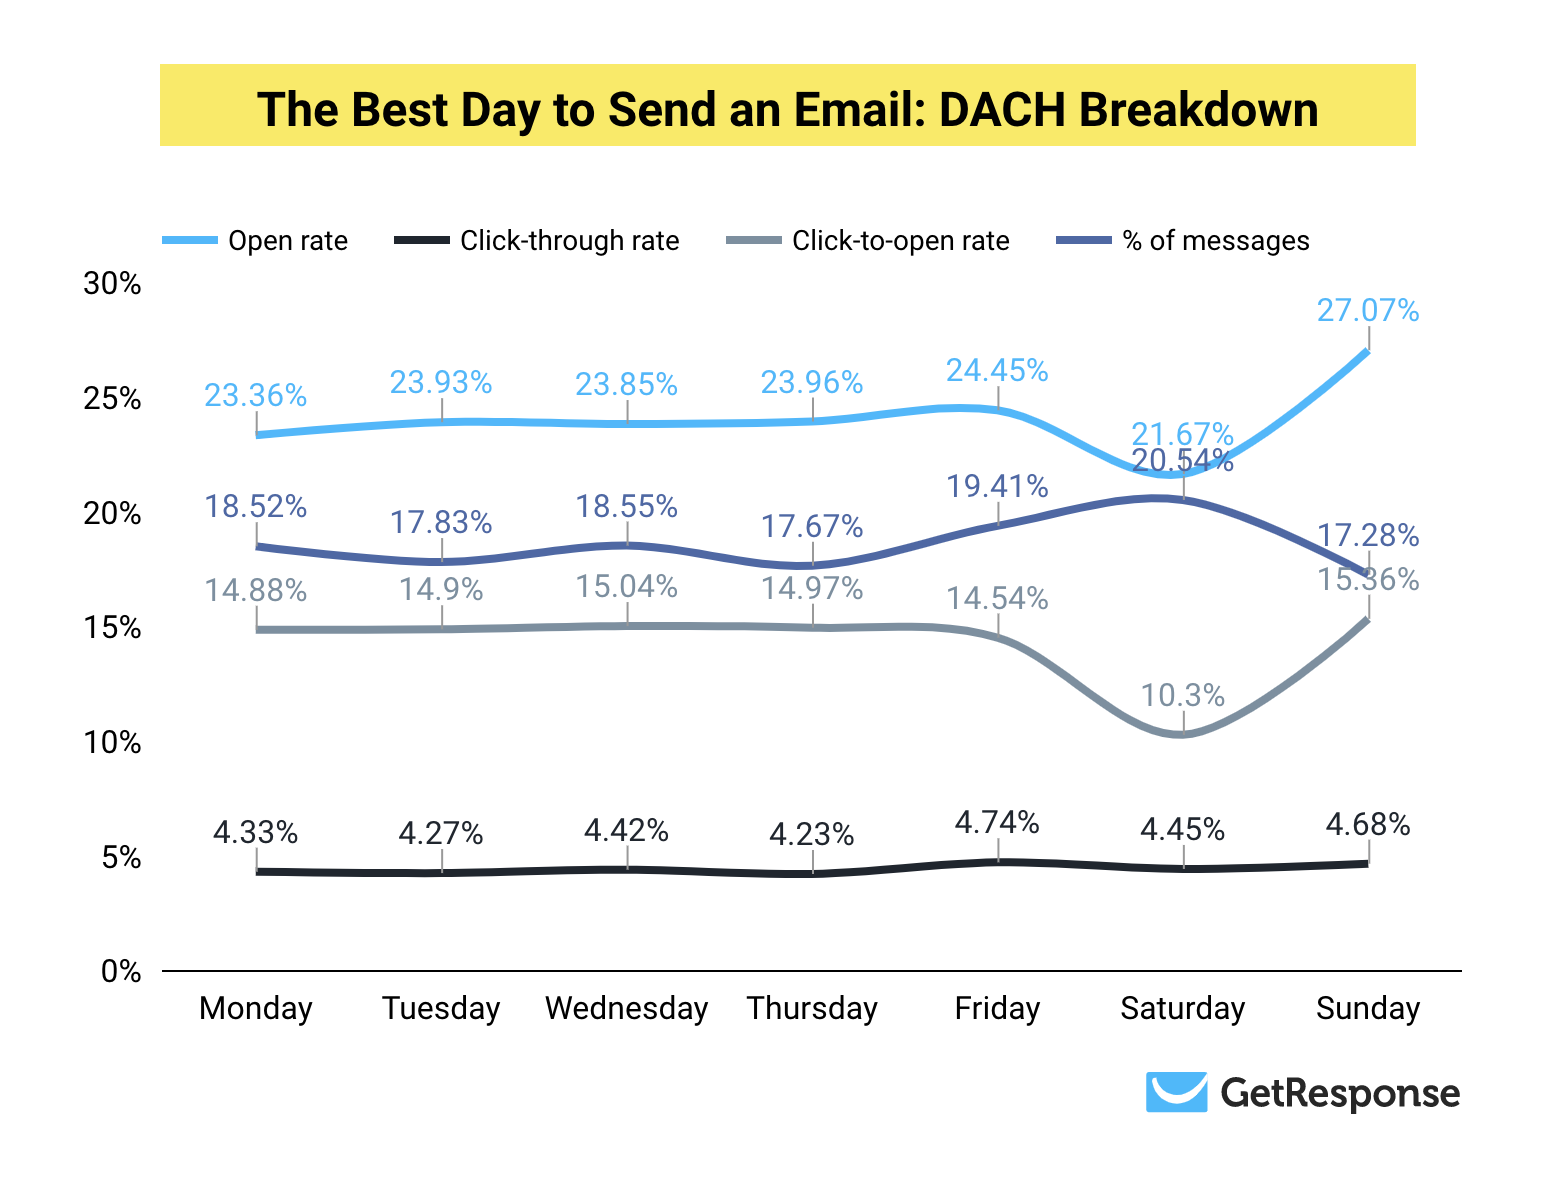 The Best Day to Send an Email in DACH Full Results.